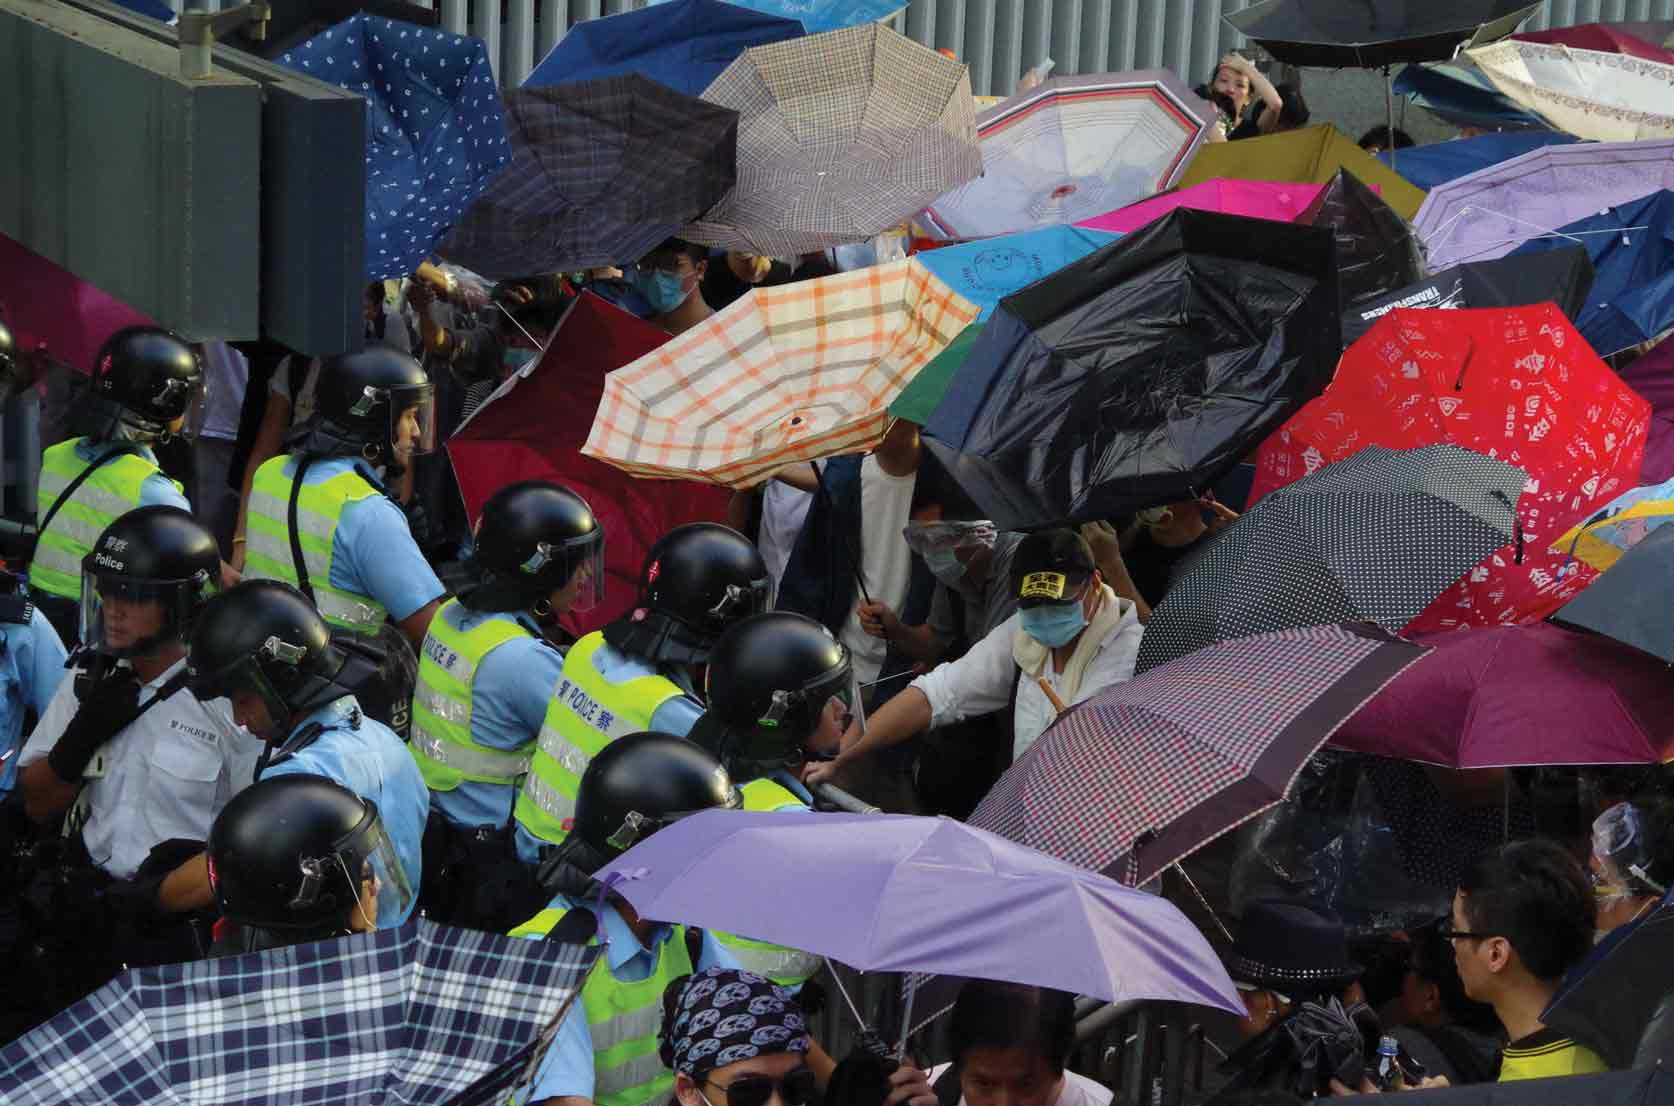 Protesters using umbrellas as shields from the police and later, tear gas, 2014. Photo: FX Pasquier